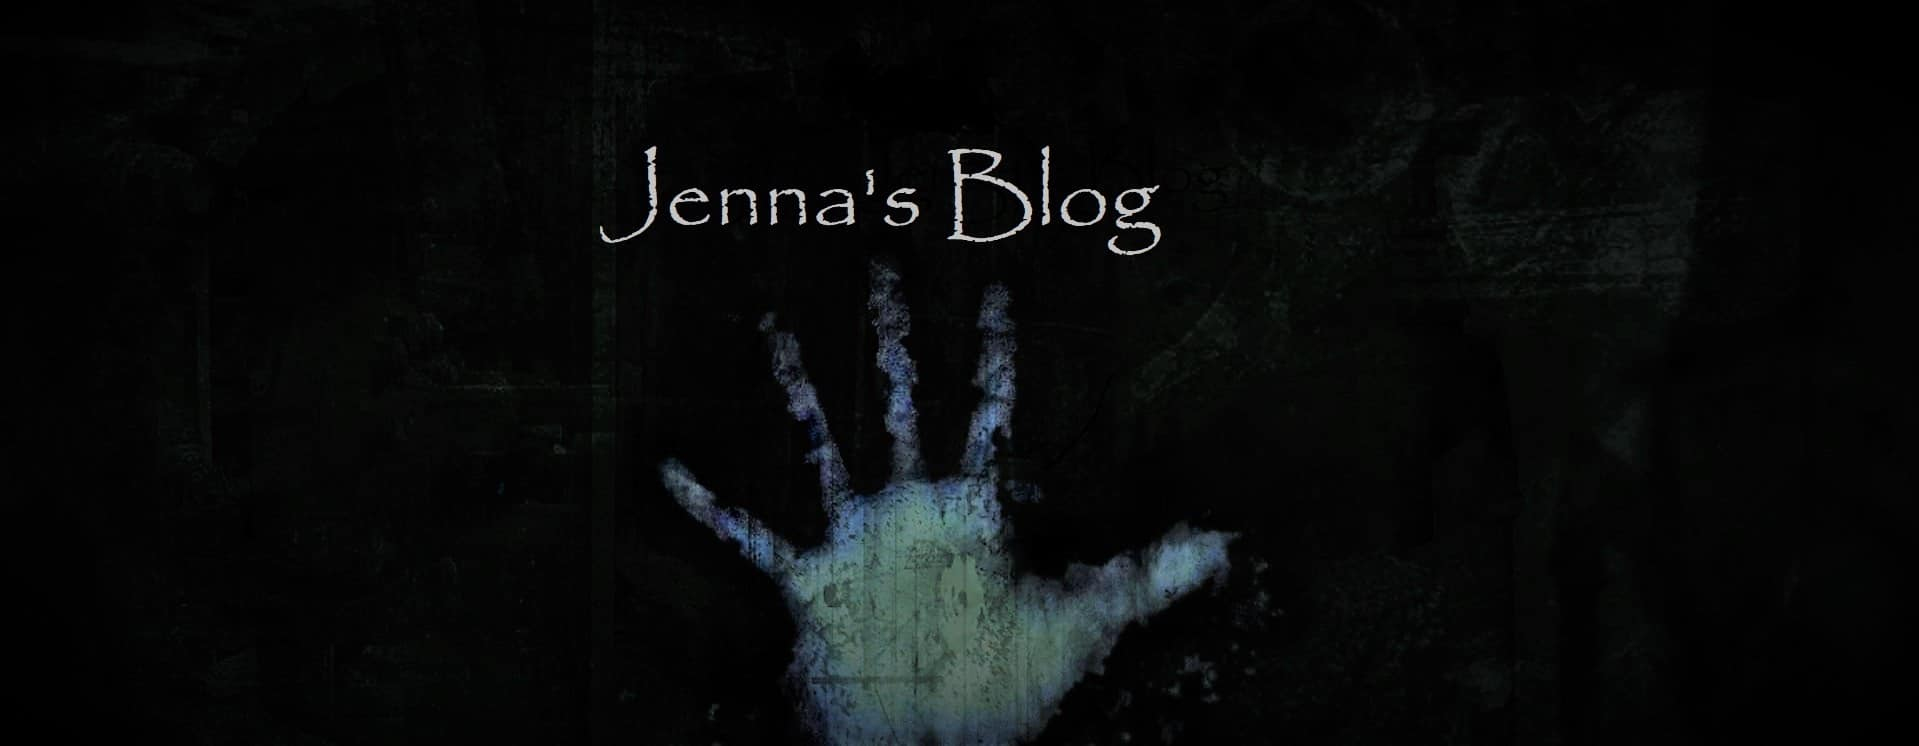 Jennas Blog Creepypasta